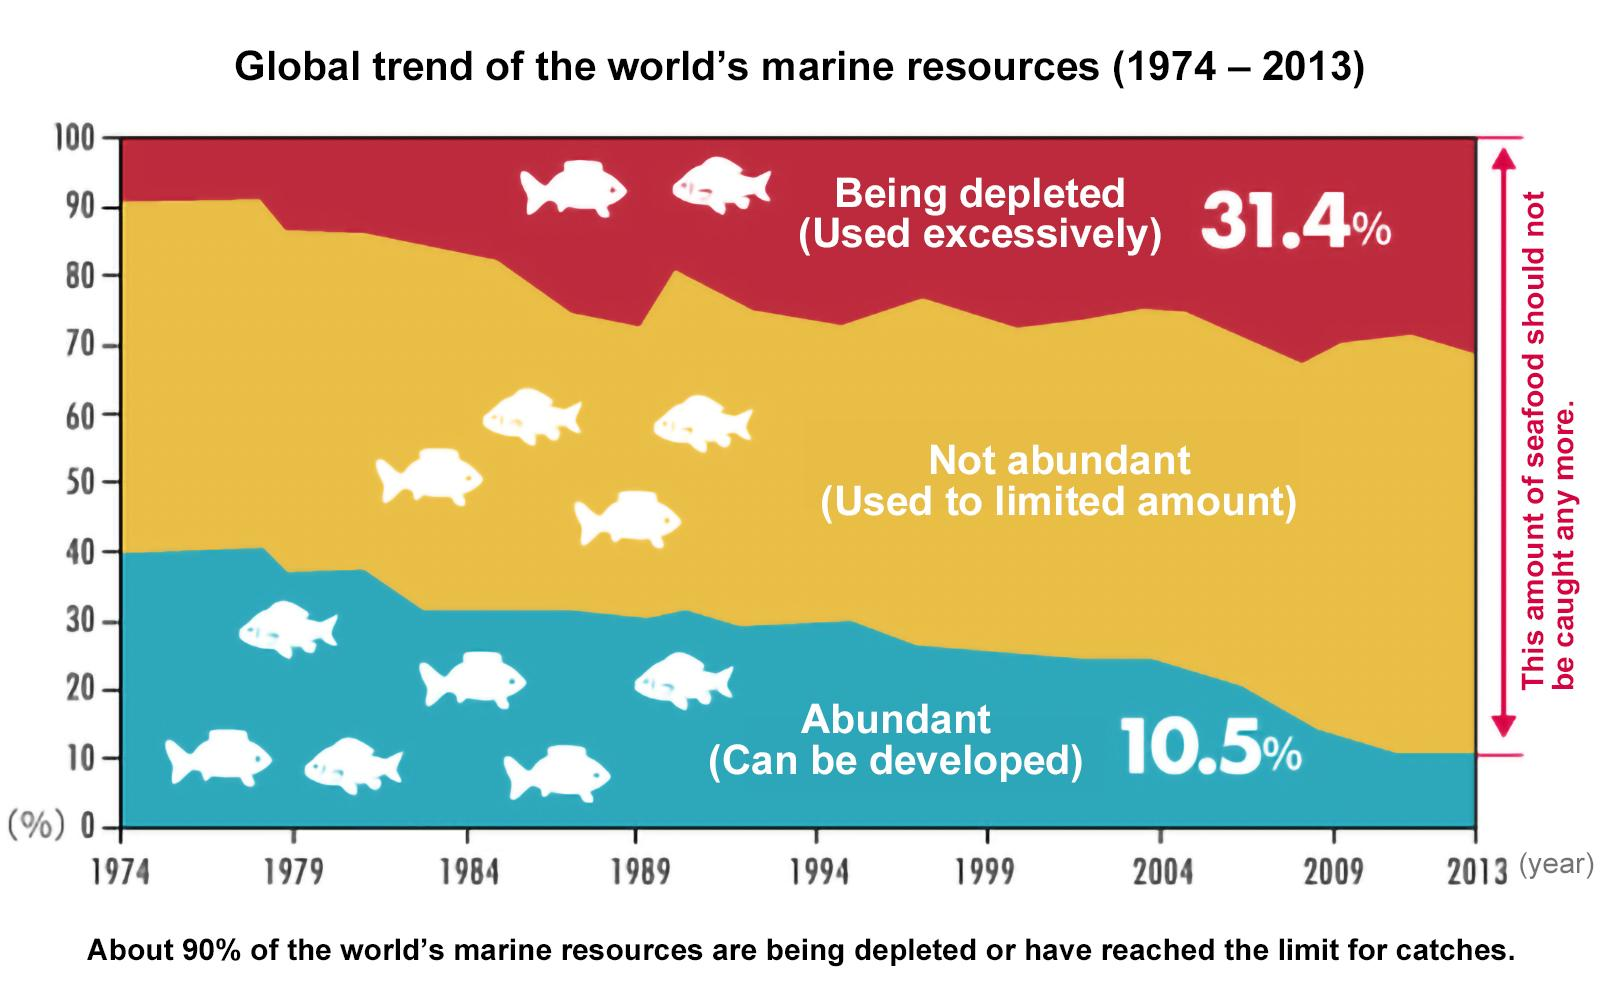 image: Global trend of the world's marine resources (1974-2013)